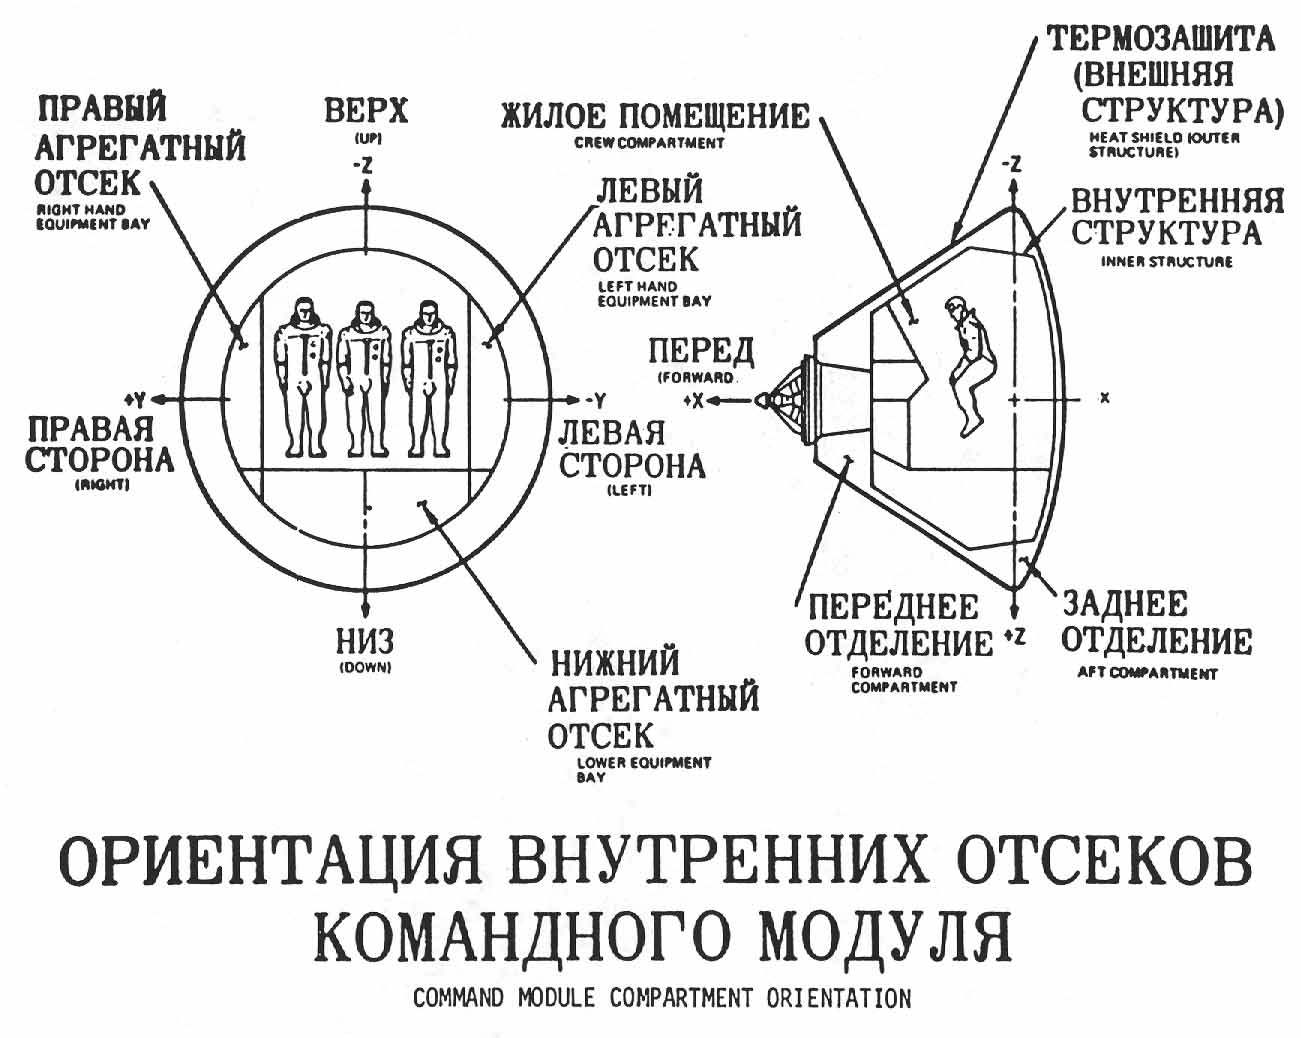 hight resolution of cross sectional diagram of command module with descriptians in russian